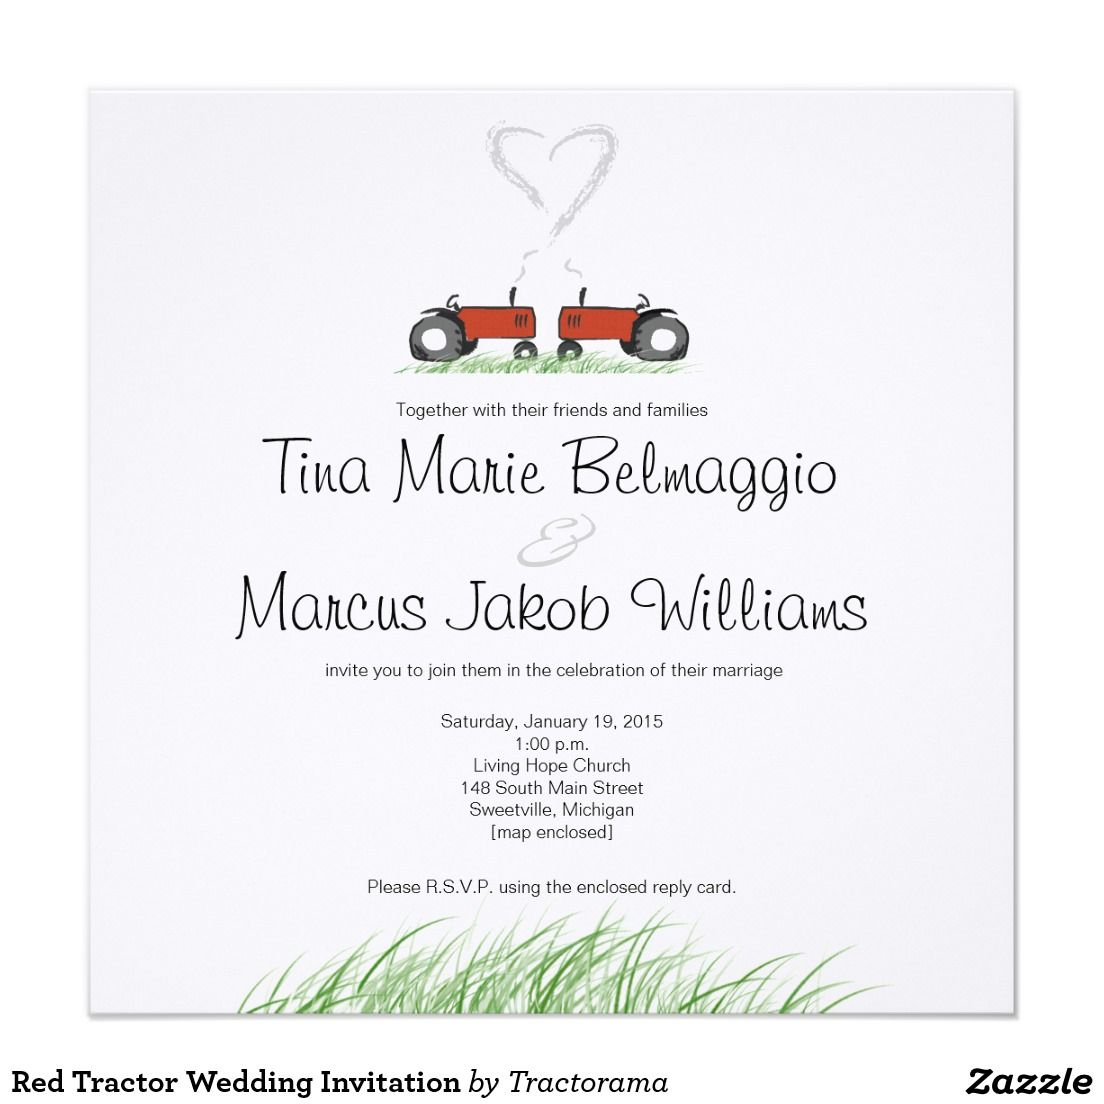 Red Tractor Wedding Invitation | Tractor